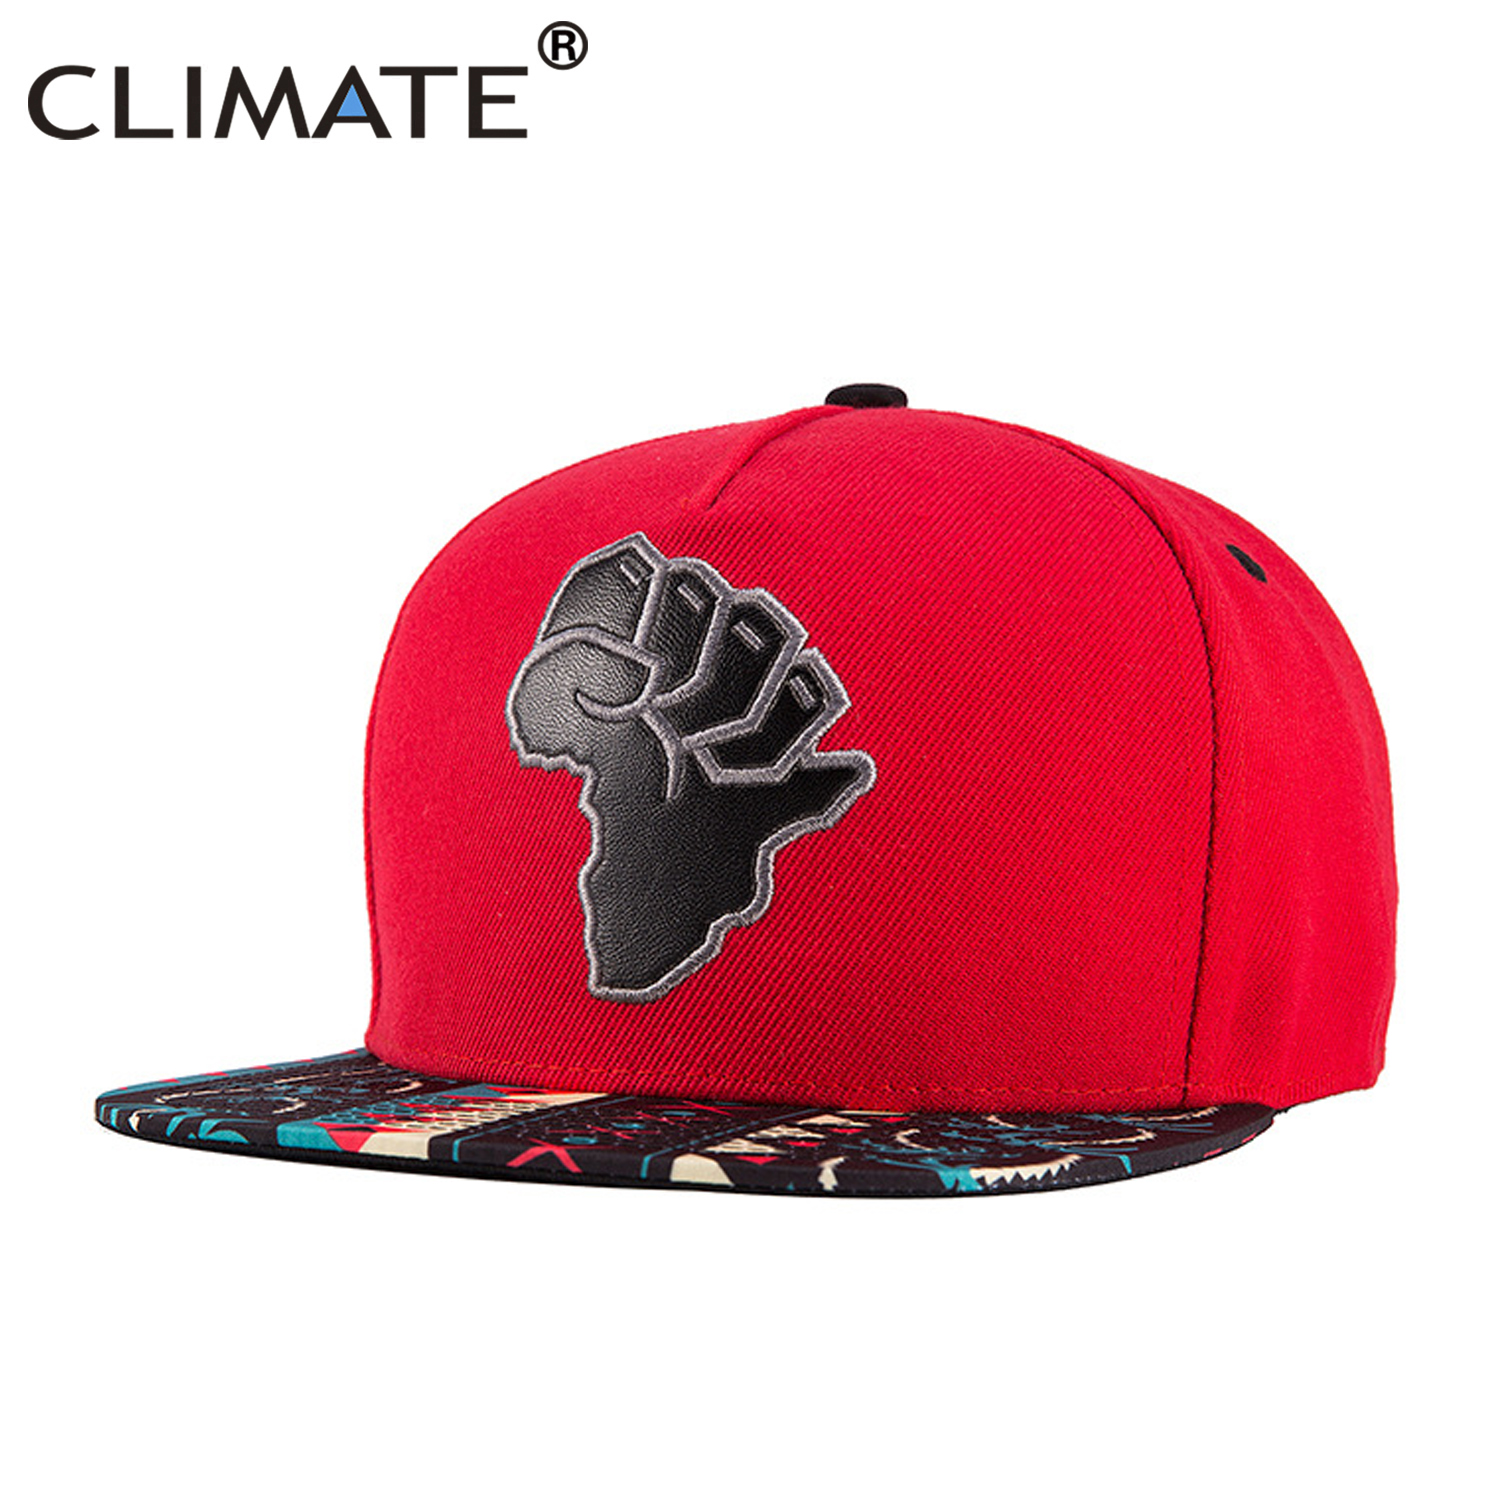 2019 Latest Design Climate African Printing Snapback Cap Hiphop Street Style Caps Rapper Africa Power Street Dancer Dance Caps Hat For Men African